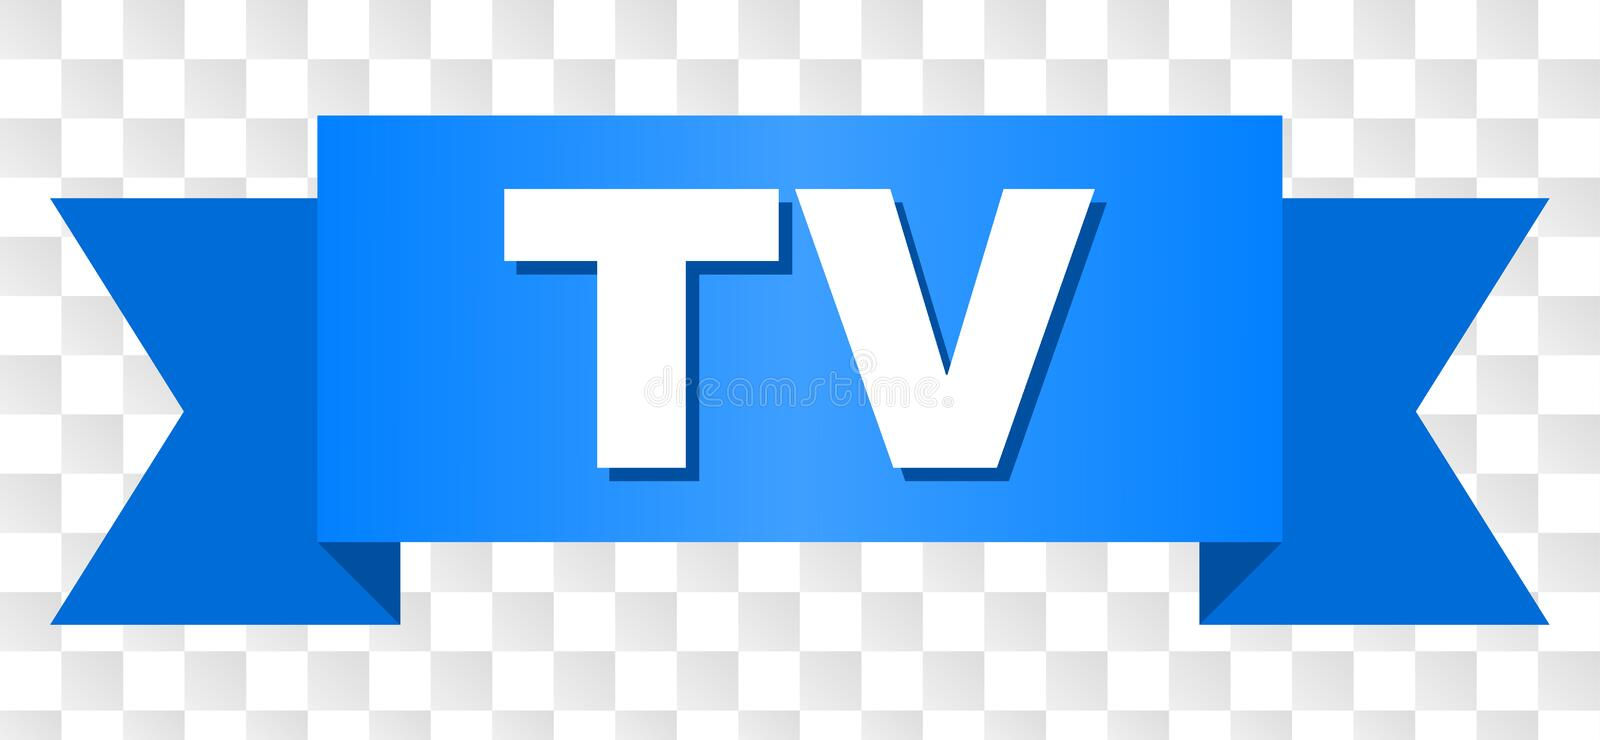 Blue Stripe with TV Text stock illustration